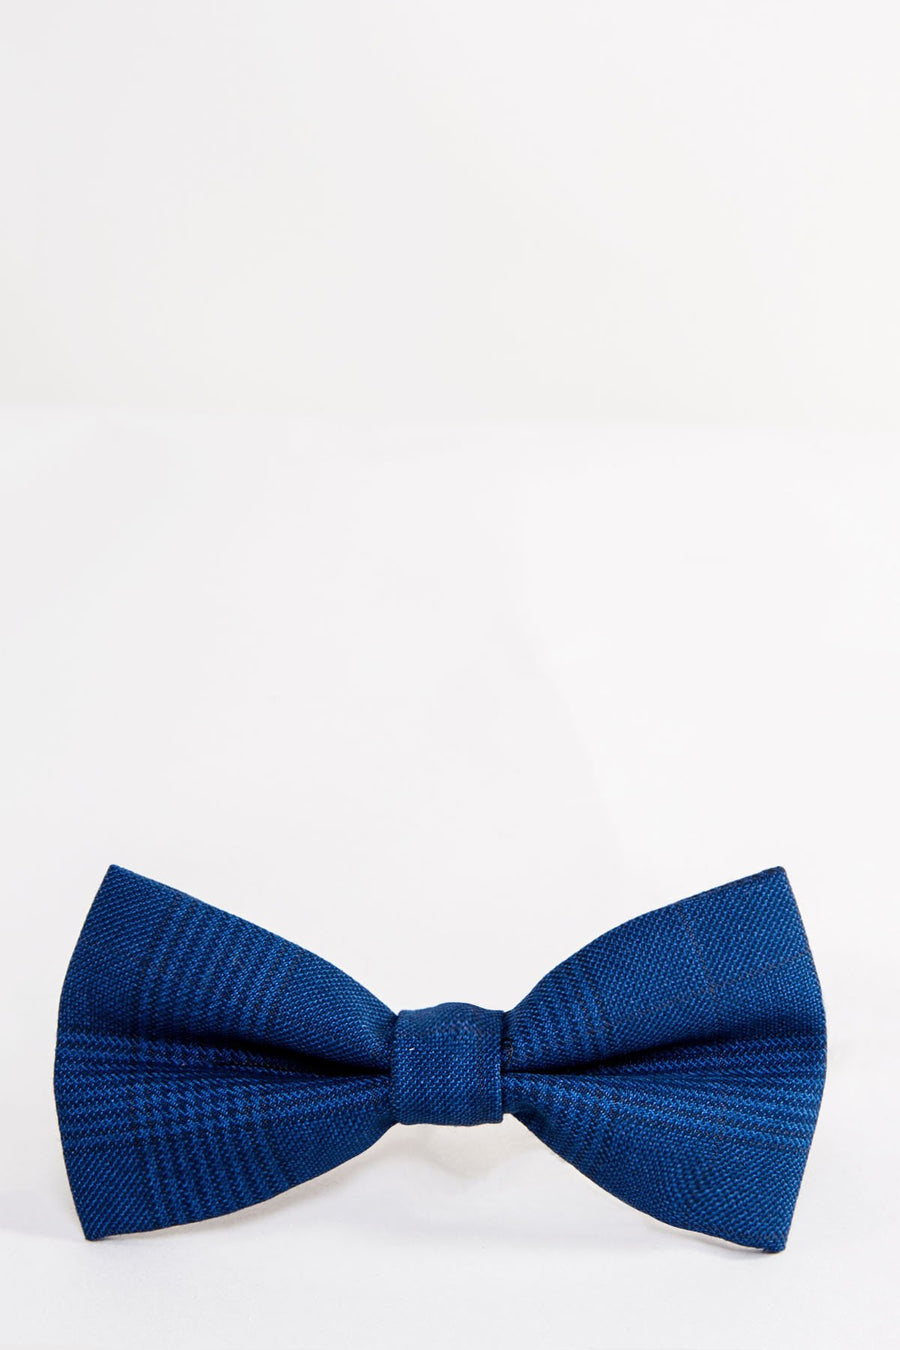 GEORGE Blue Check Bow Tie - Wedding Suit Direct